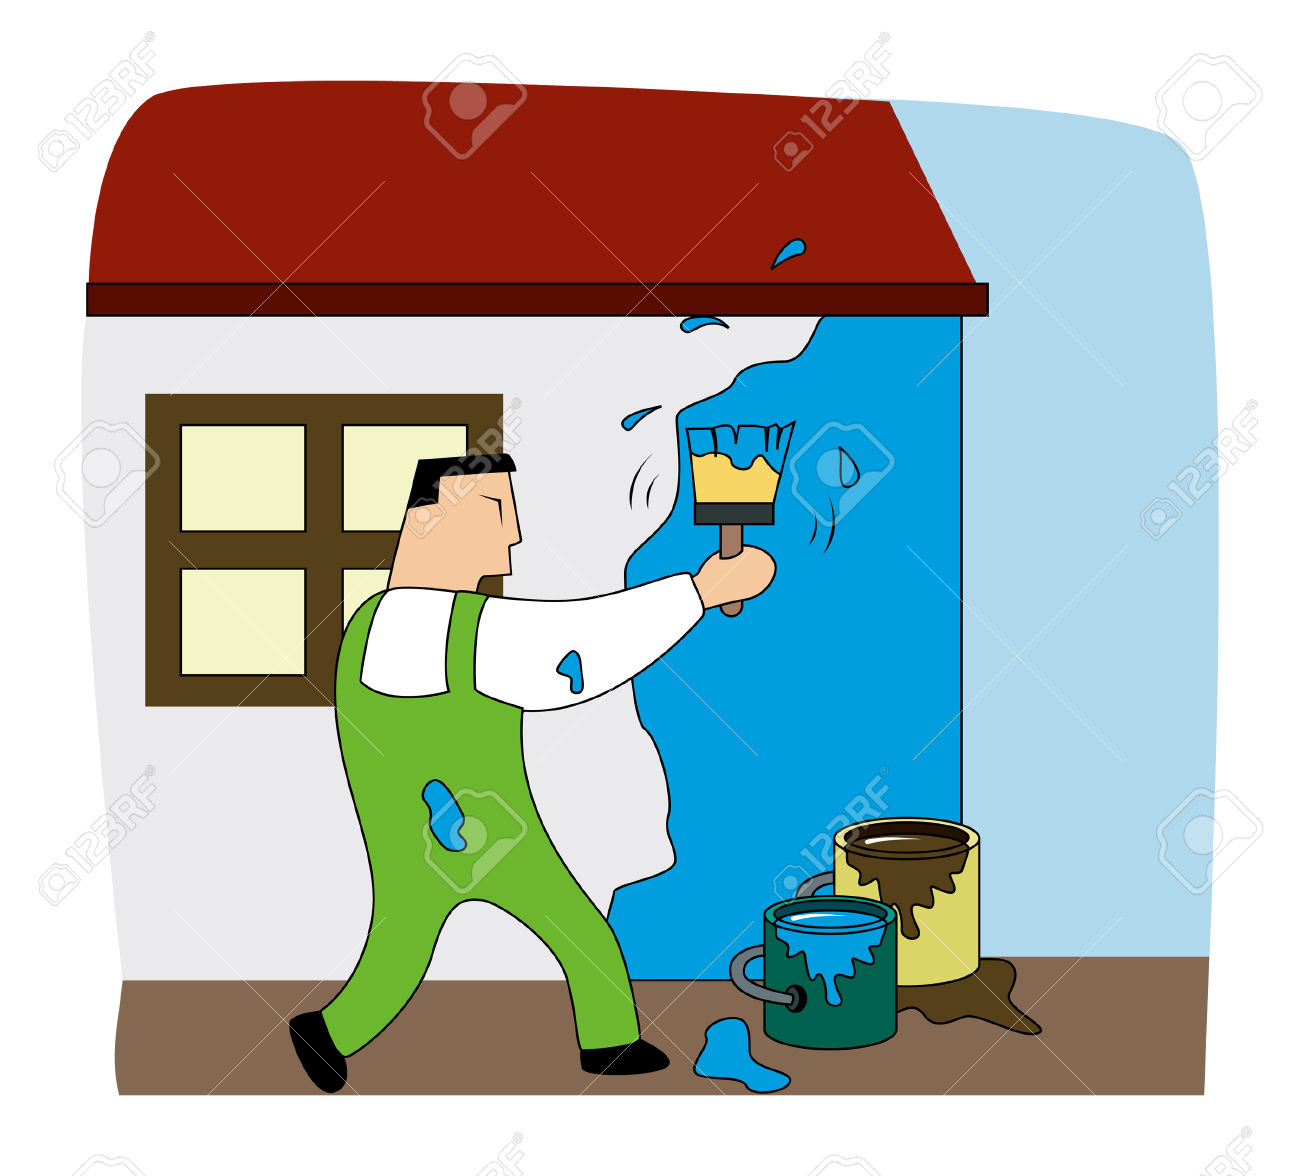 Painting A House Clipart